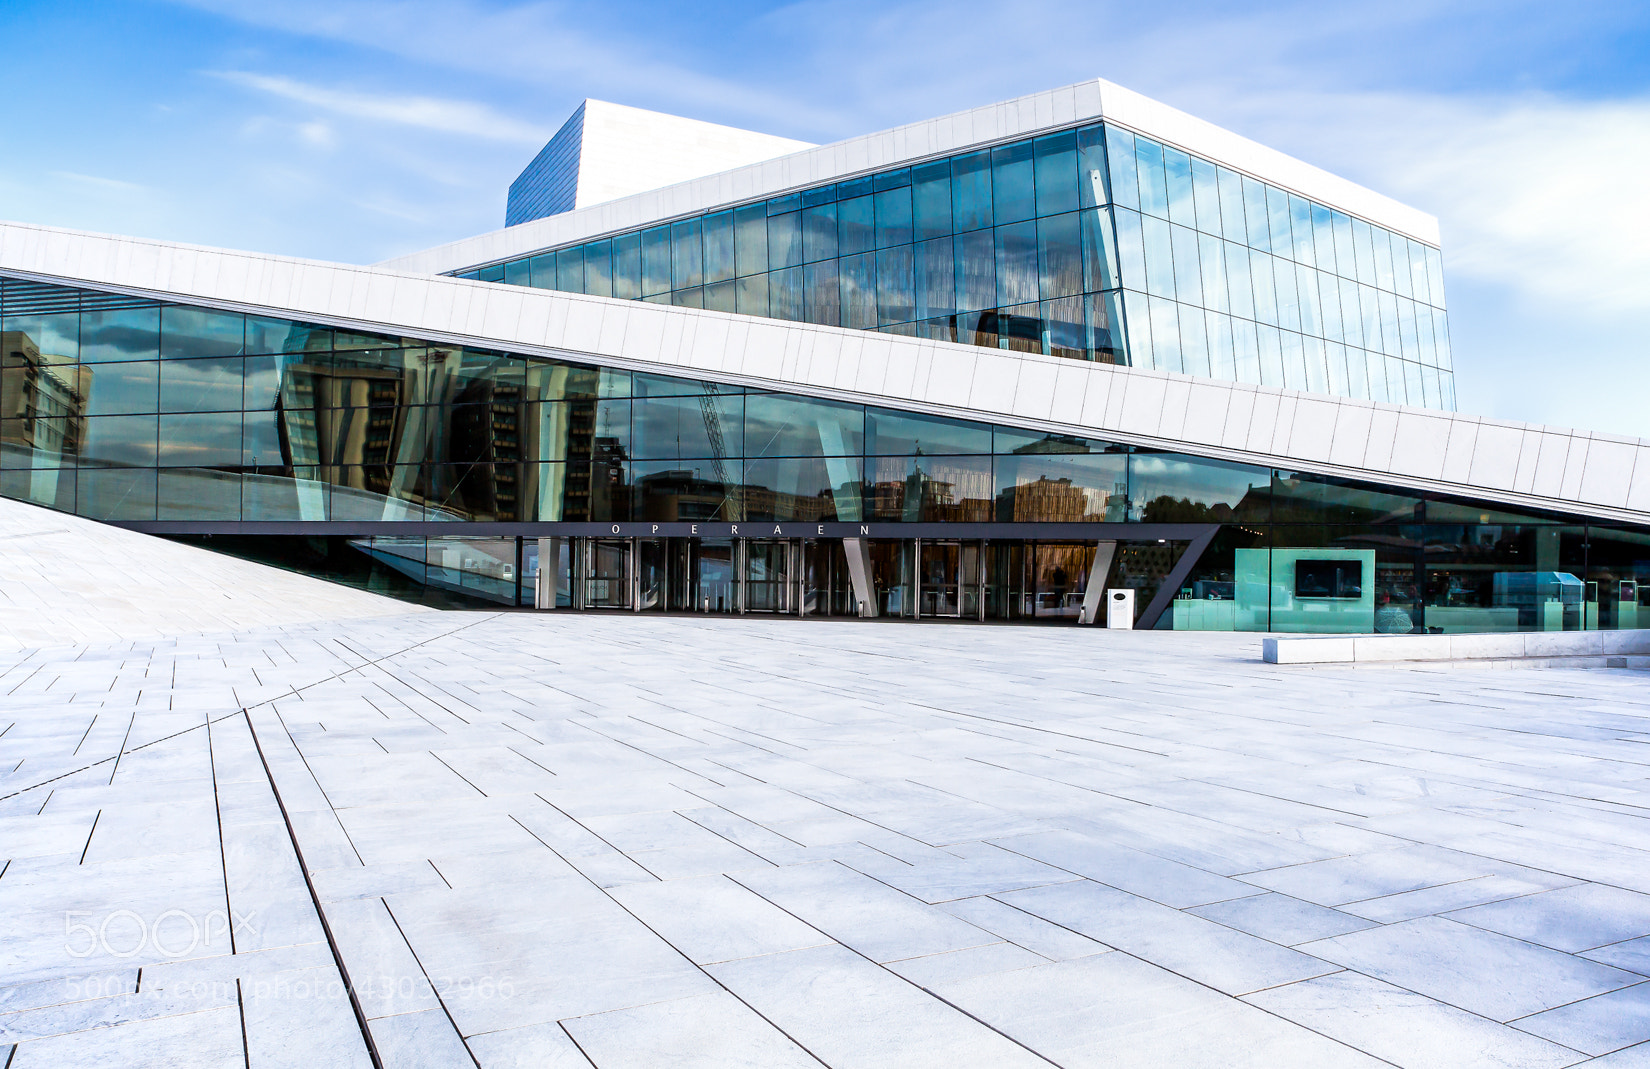 Photograph Opera House Oslo by Christian Fischer on 500px